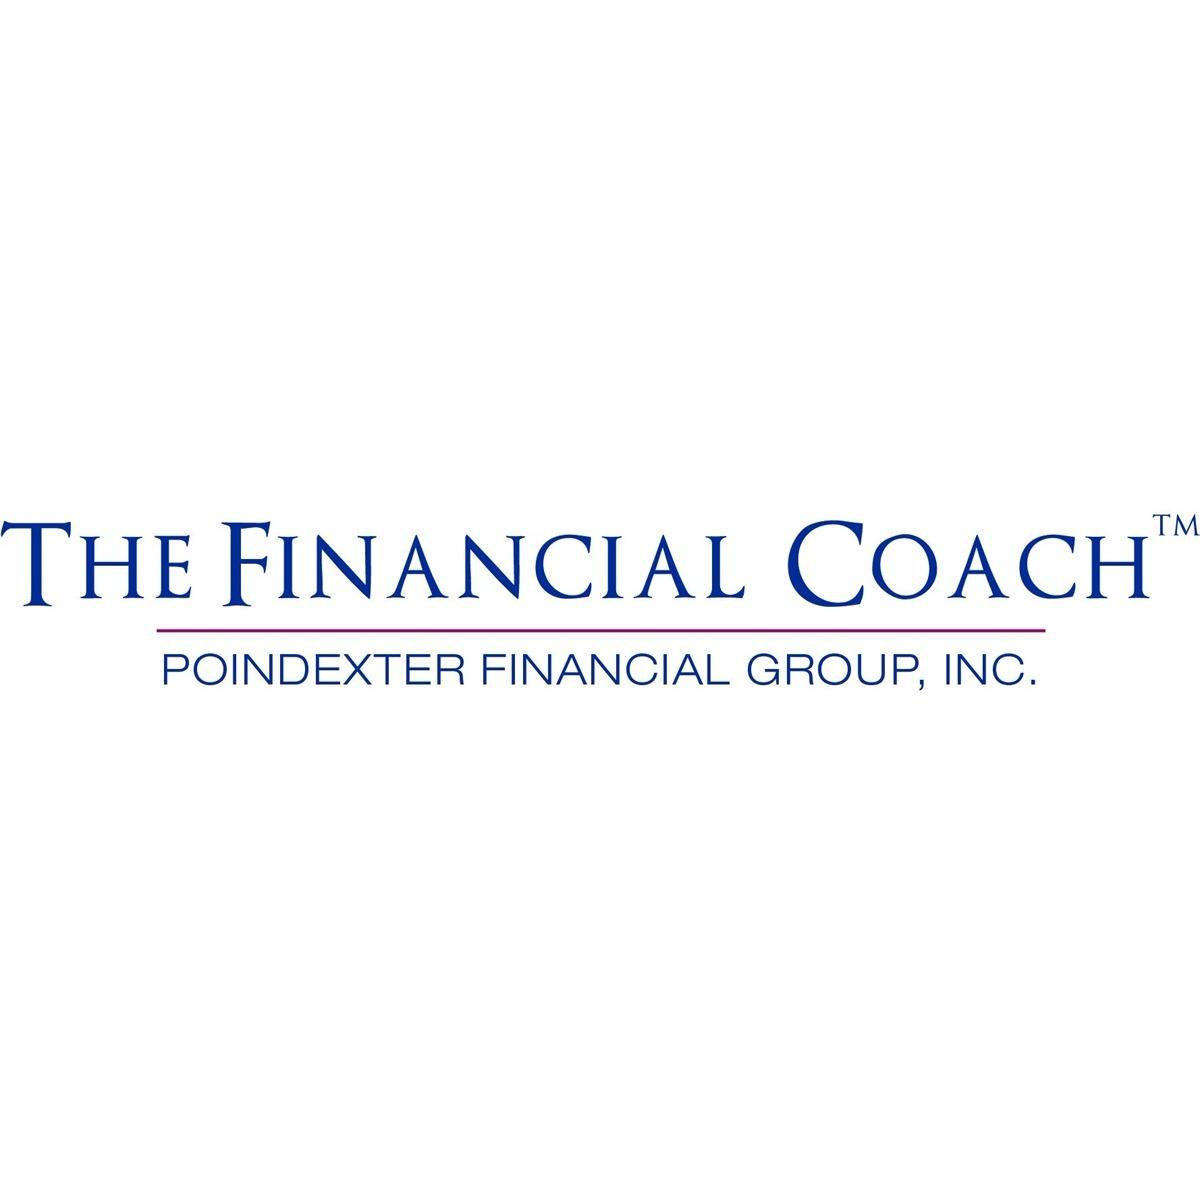 Poindexter Financial Group, Inc., The Financial Coach